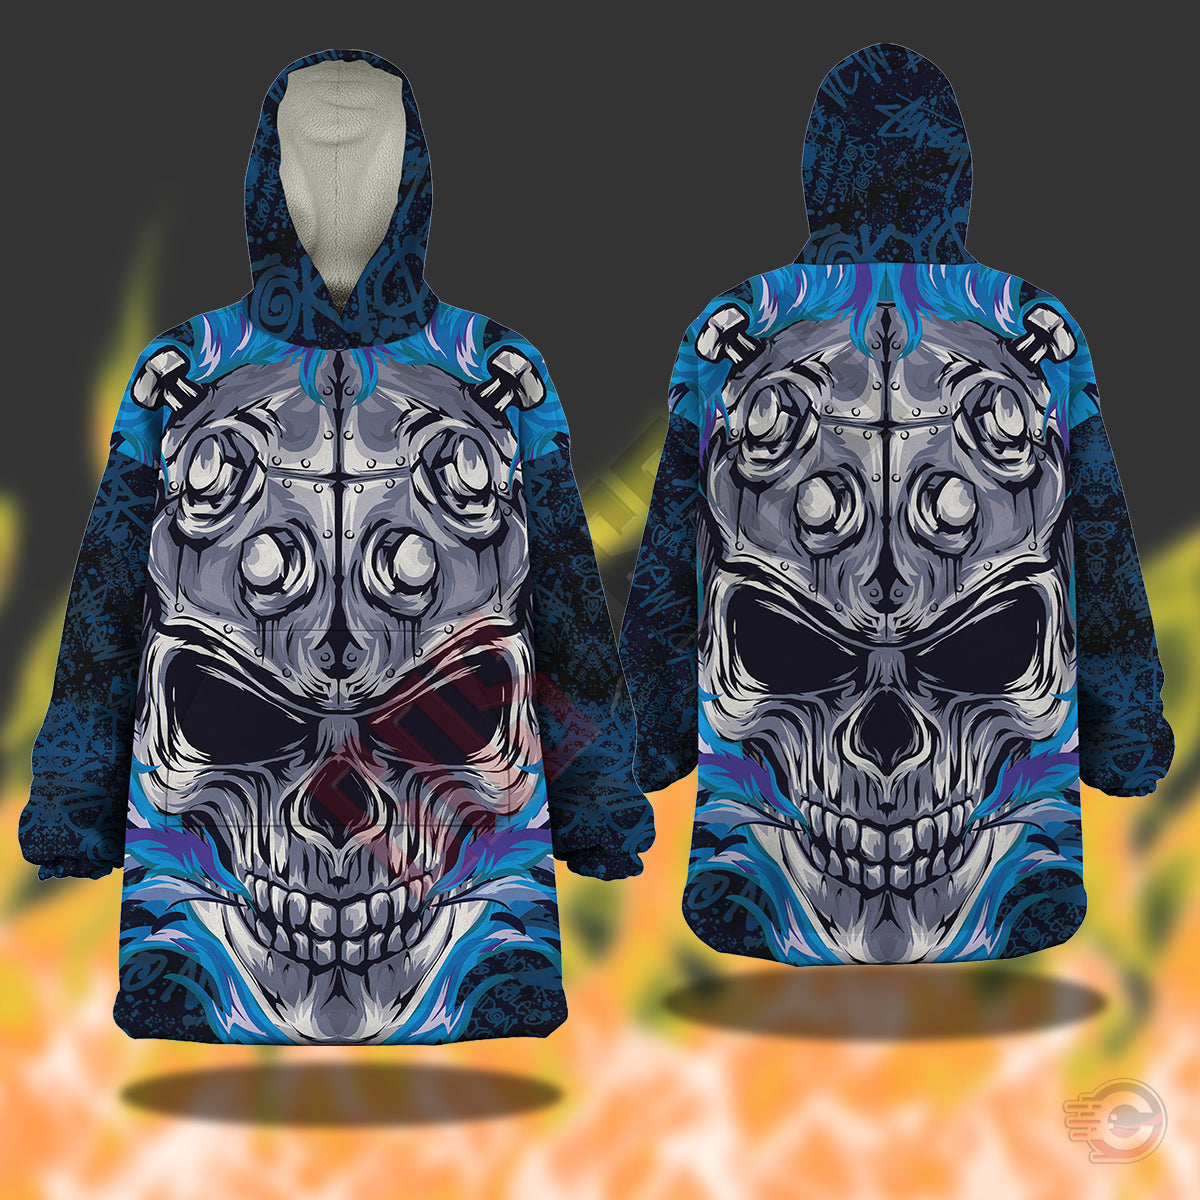 Original Designs : Flaming Skull Snug